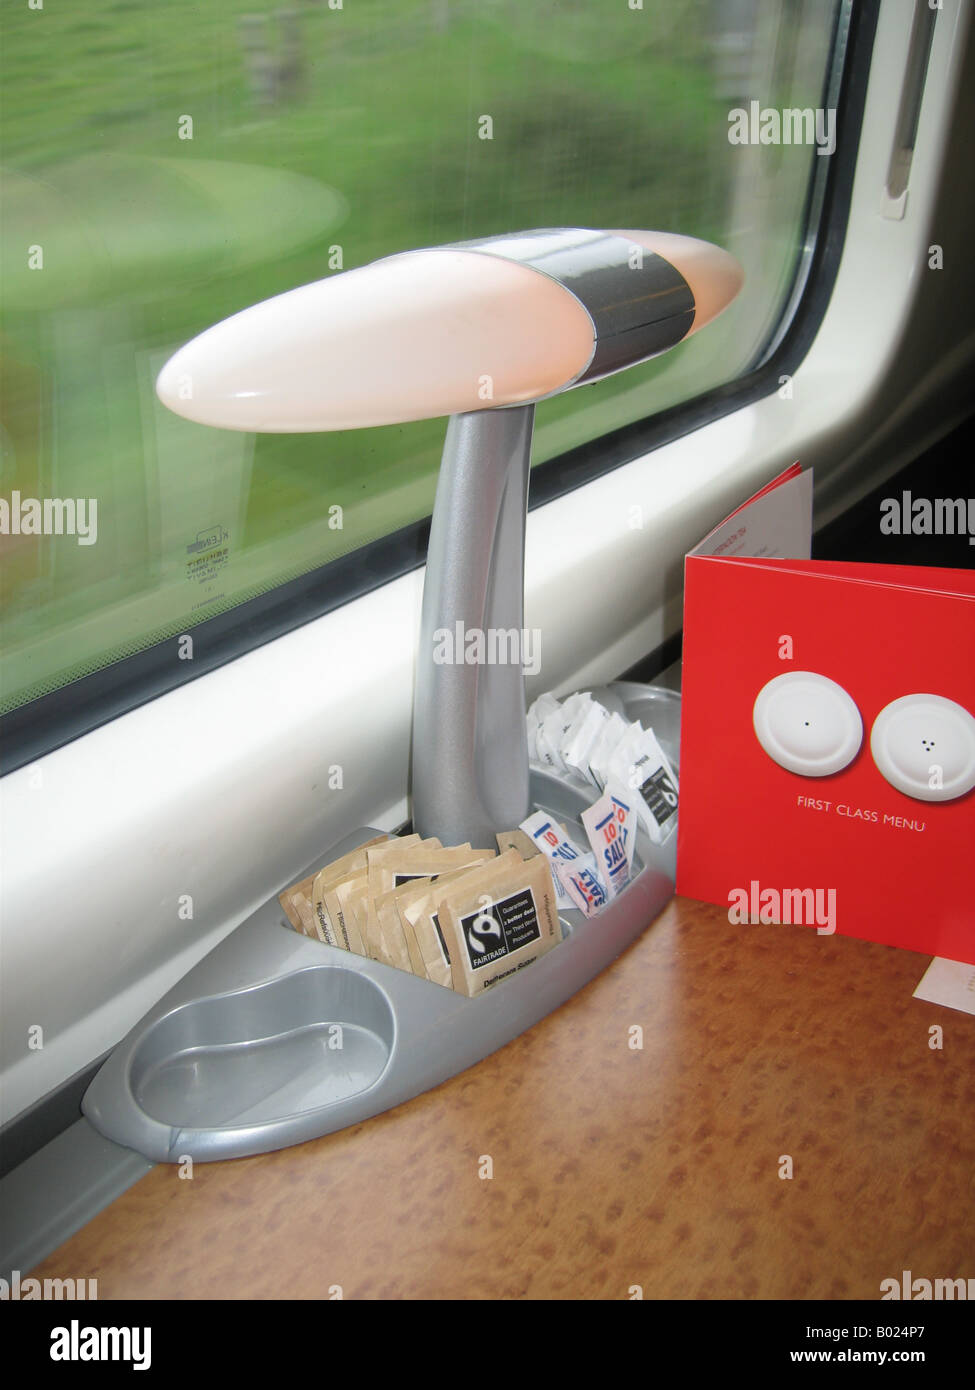 First class train seat - Stock Image